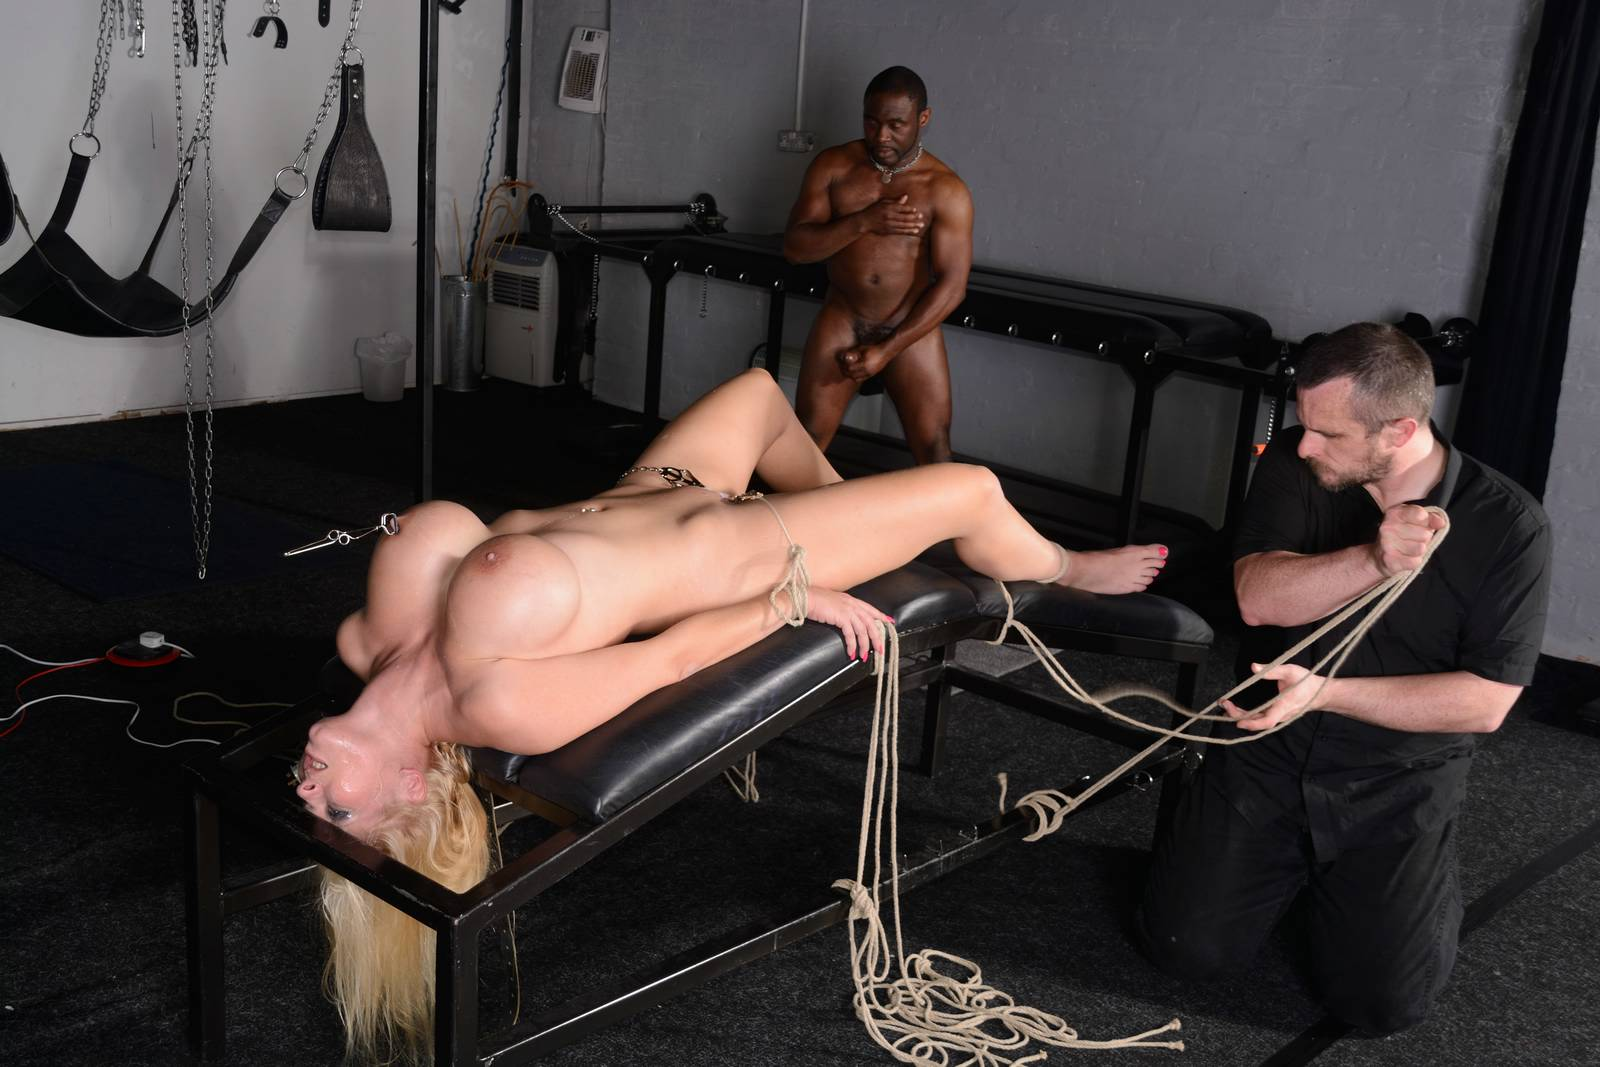 Angela white begs to suffer for her master in metal bondage kink humiliation, flogging watch online